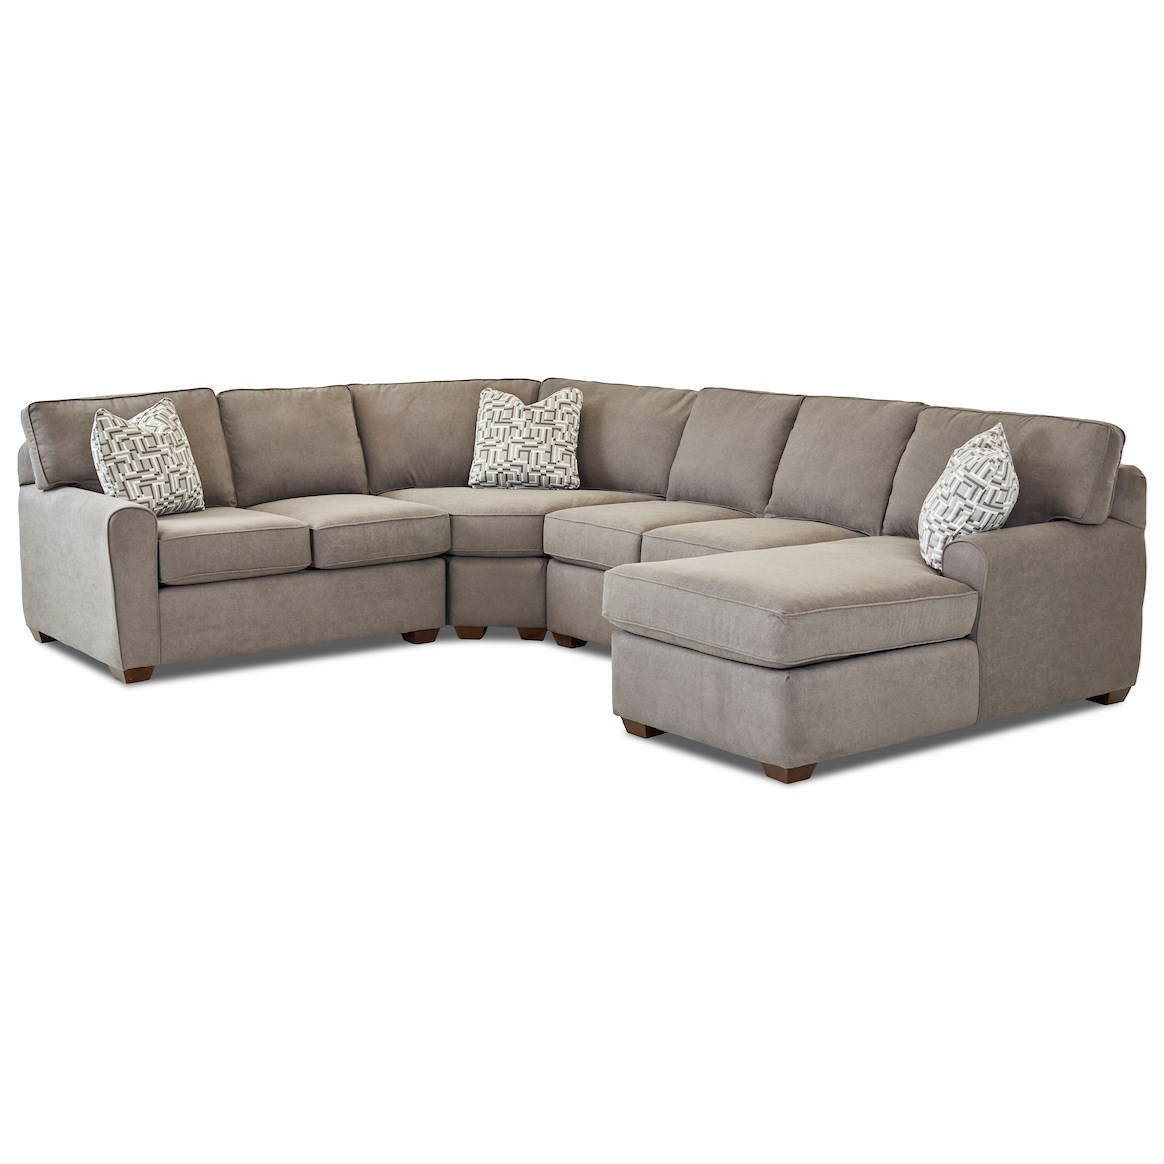 Hybrid 4 Pc Sectional Sofa w/RAF Chaise by Klaussner at Johnny Janosik